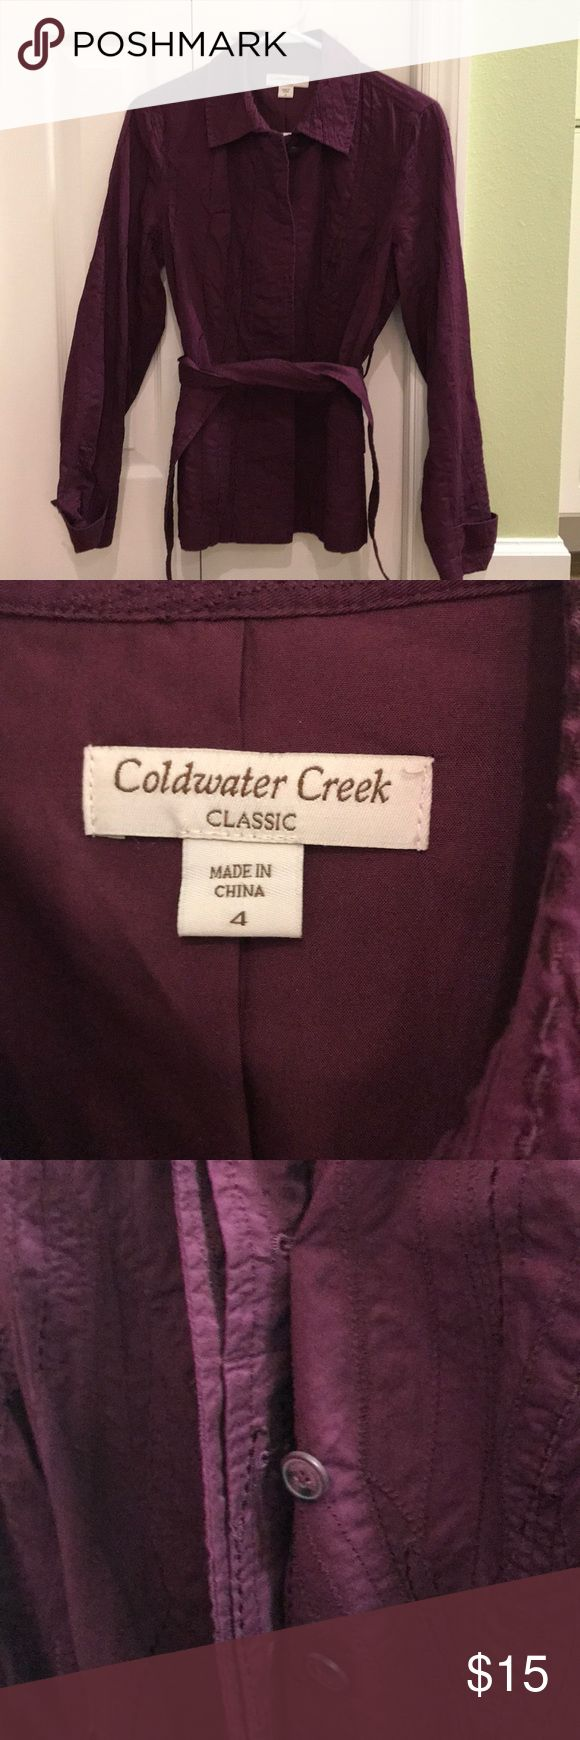 Coldwater Creek Sz. 4 Maroon belted jacket. Never worn the Coldwater Creek Size 4 long sleeved, maroon/burgundy jacket is very textual with machine embroidery throughout. Belted at the waist and a hidden button placket front are style features of this piece. The fabric is cotton with a rayon lining and the jacket it machine washable. Really a timeless piece. Coldwater Creek Jackets & Coats Utility Jackets